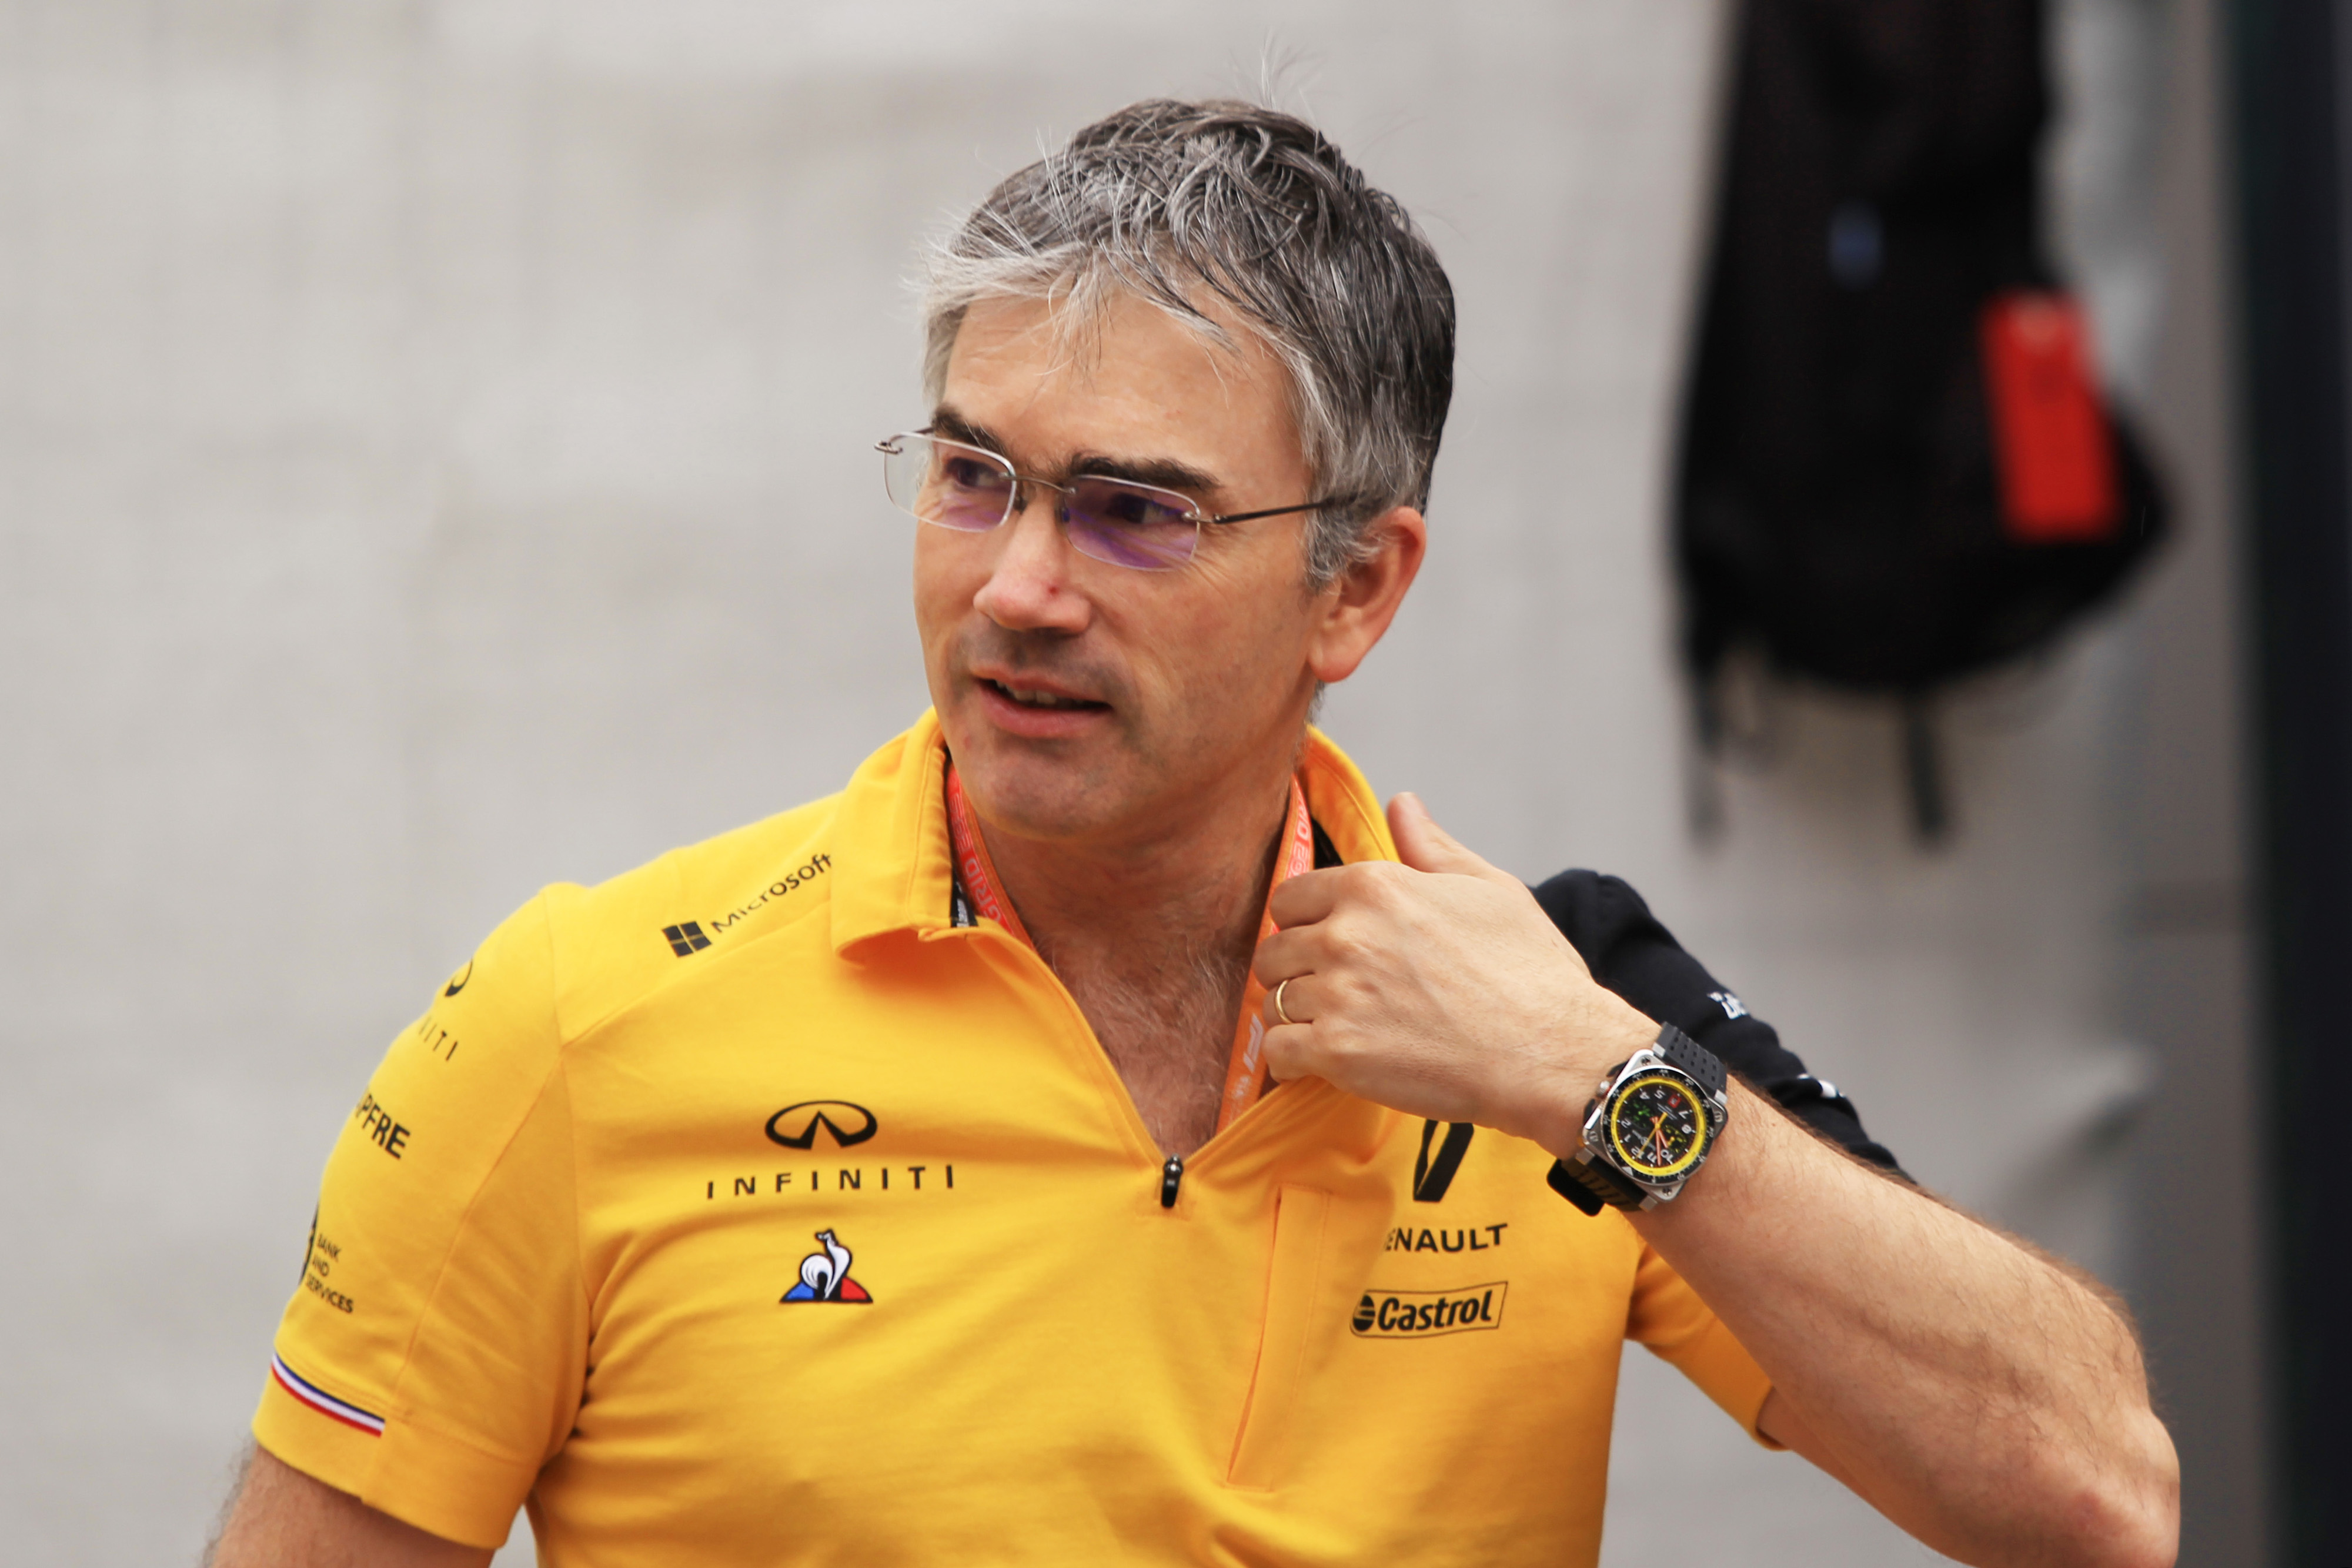 F1 Formula 1 Formula One Nick Chester Technical Director Renault